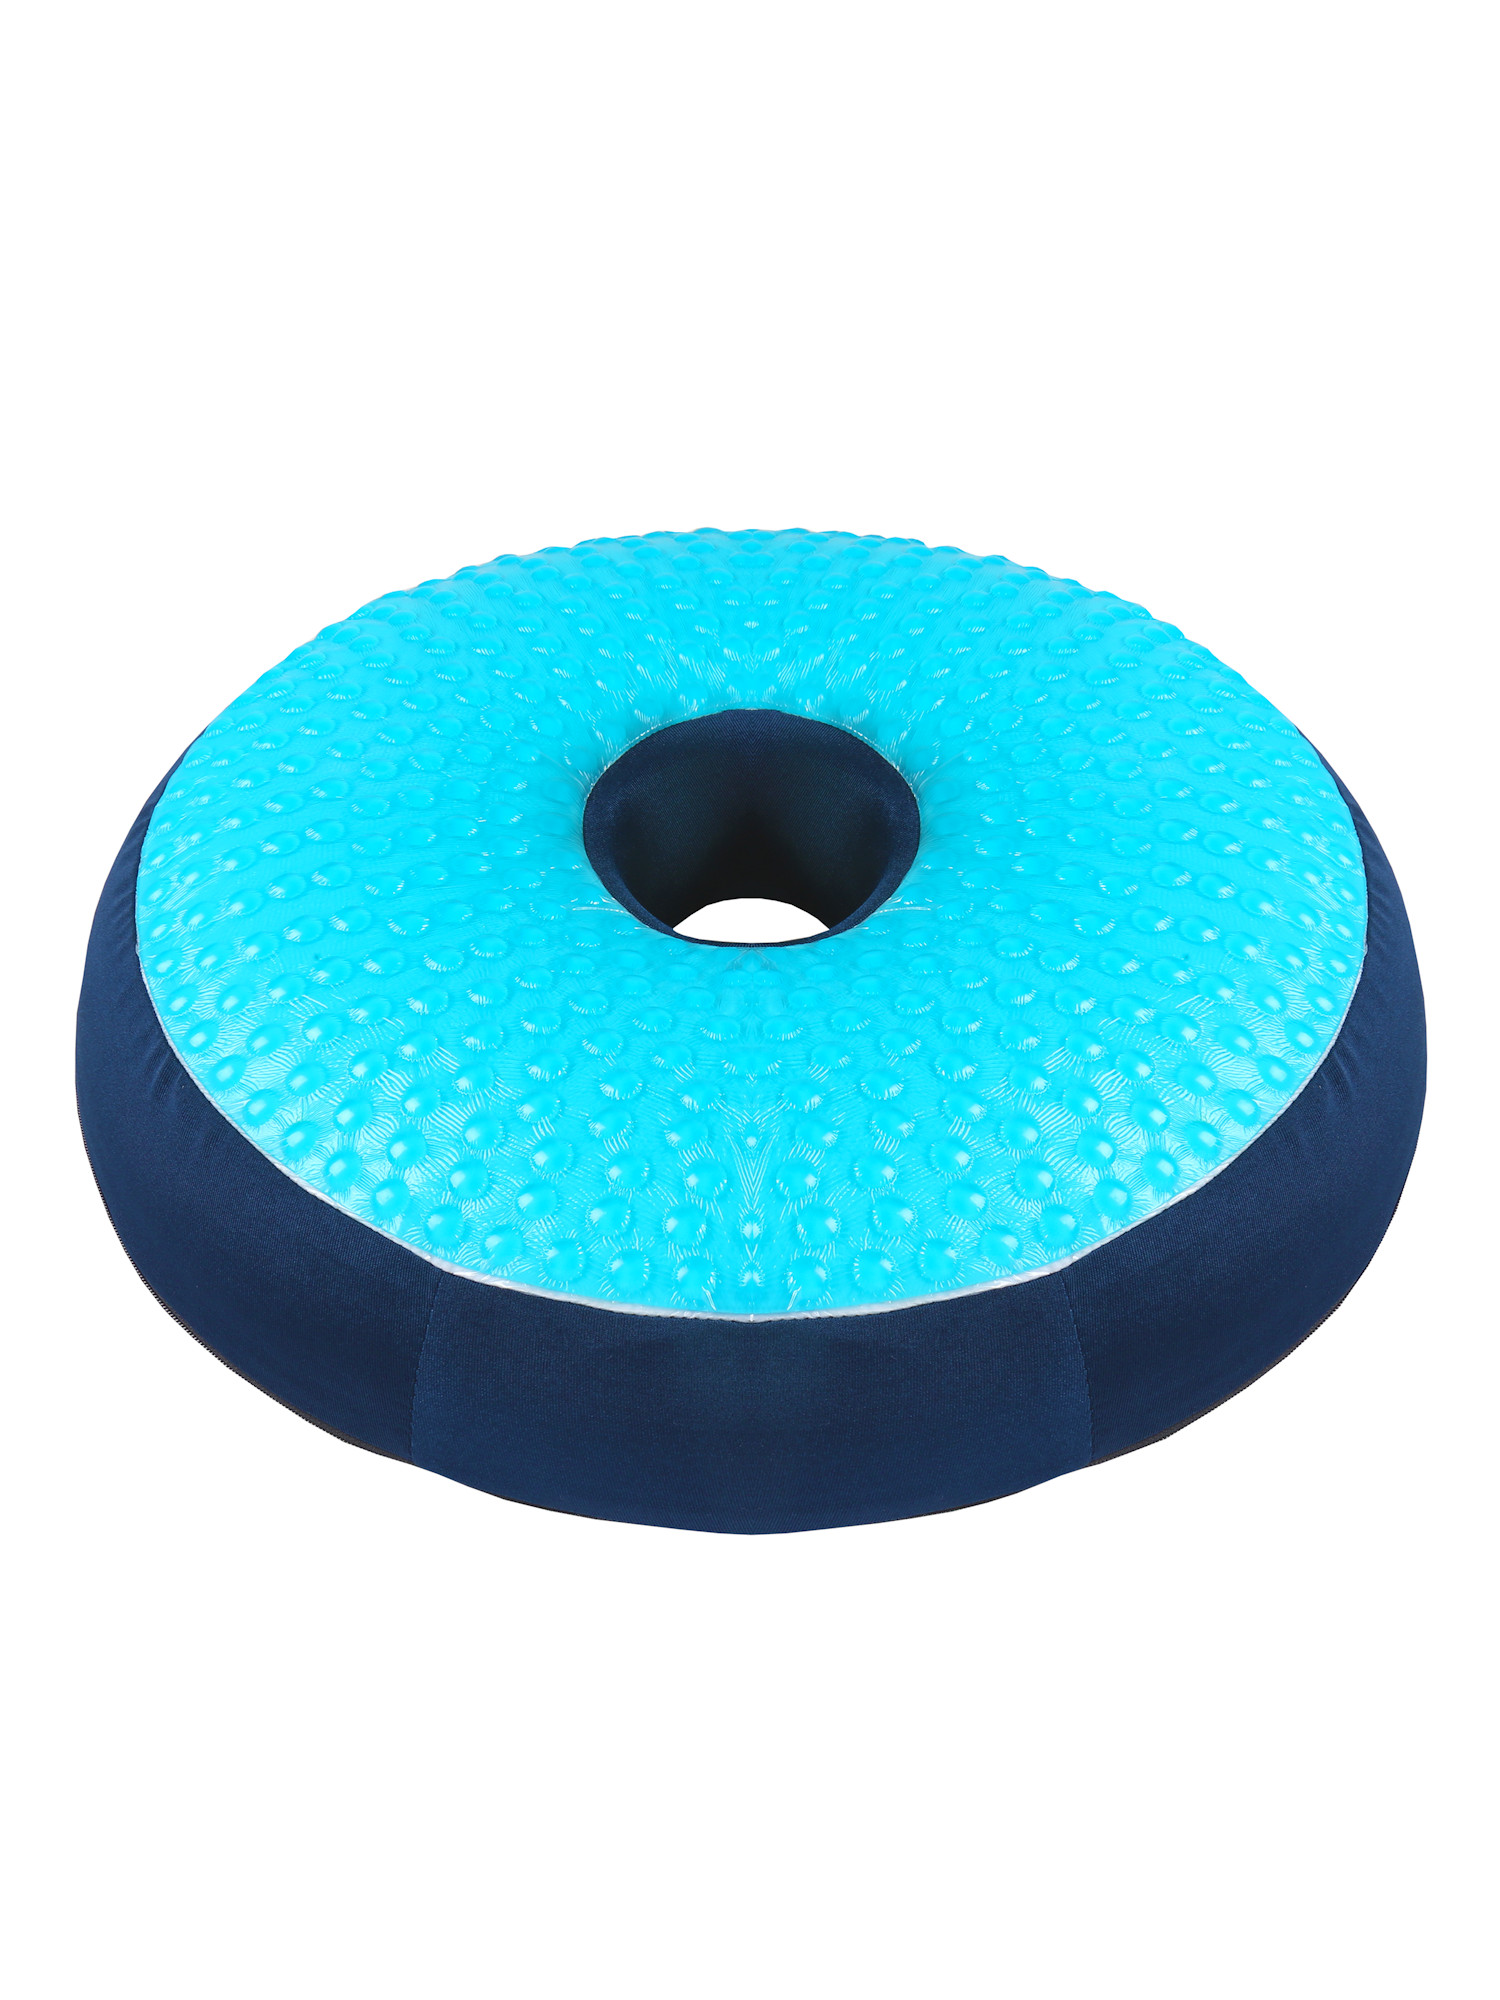 msr imports coccyx relief gel cushion donut pillow for hemorrhoid injury pain relief walmart com